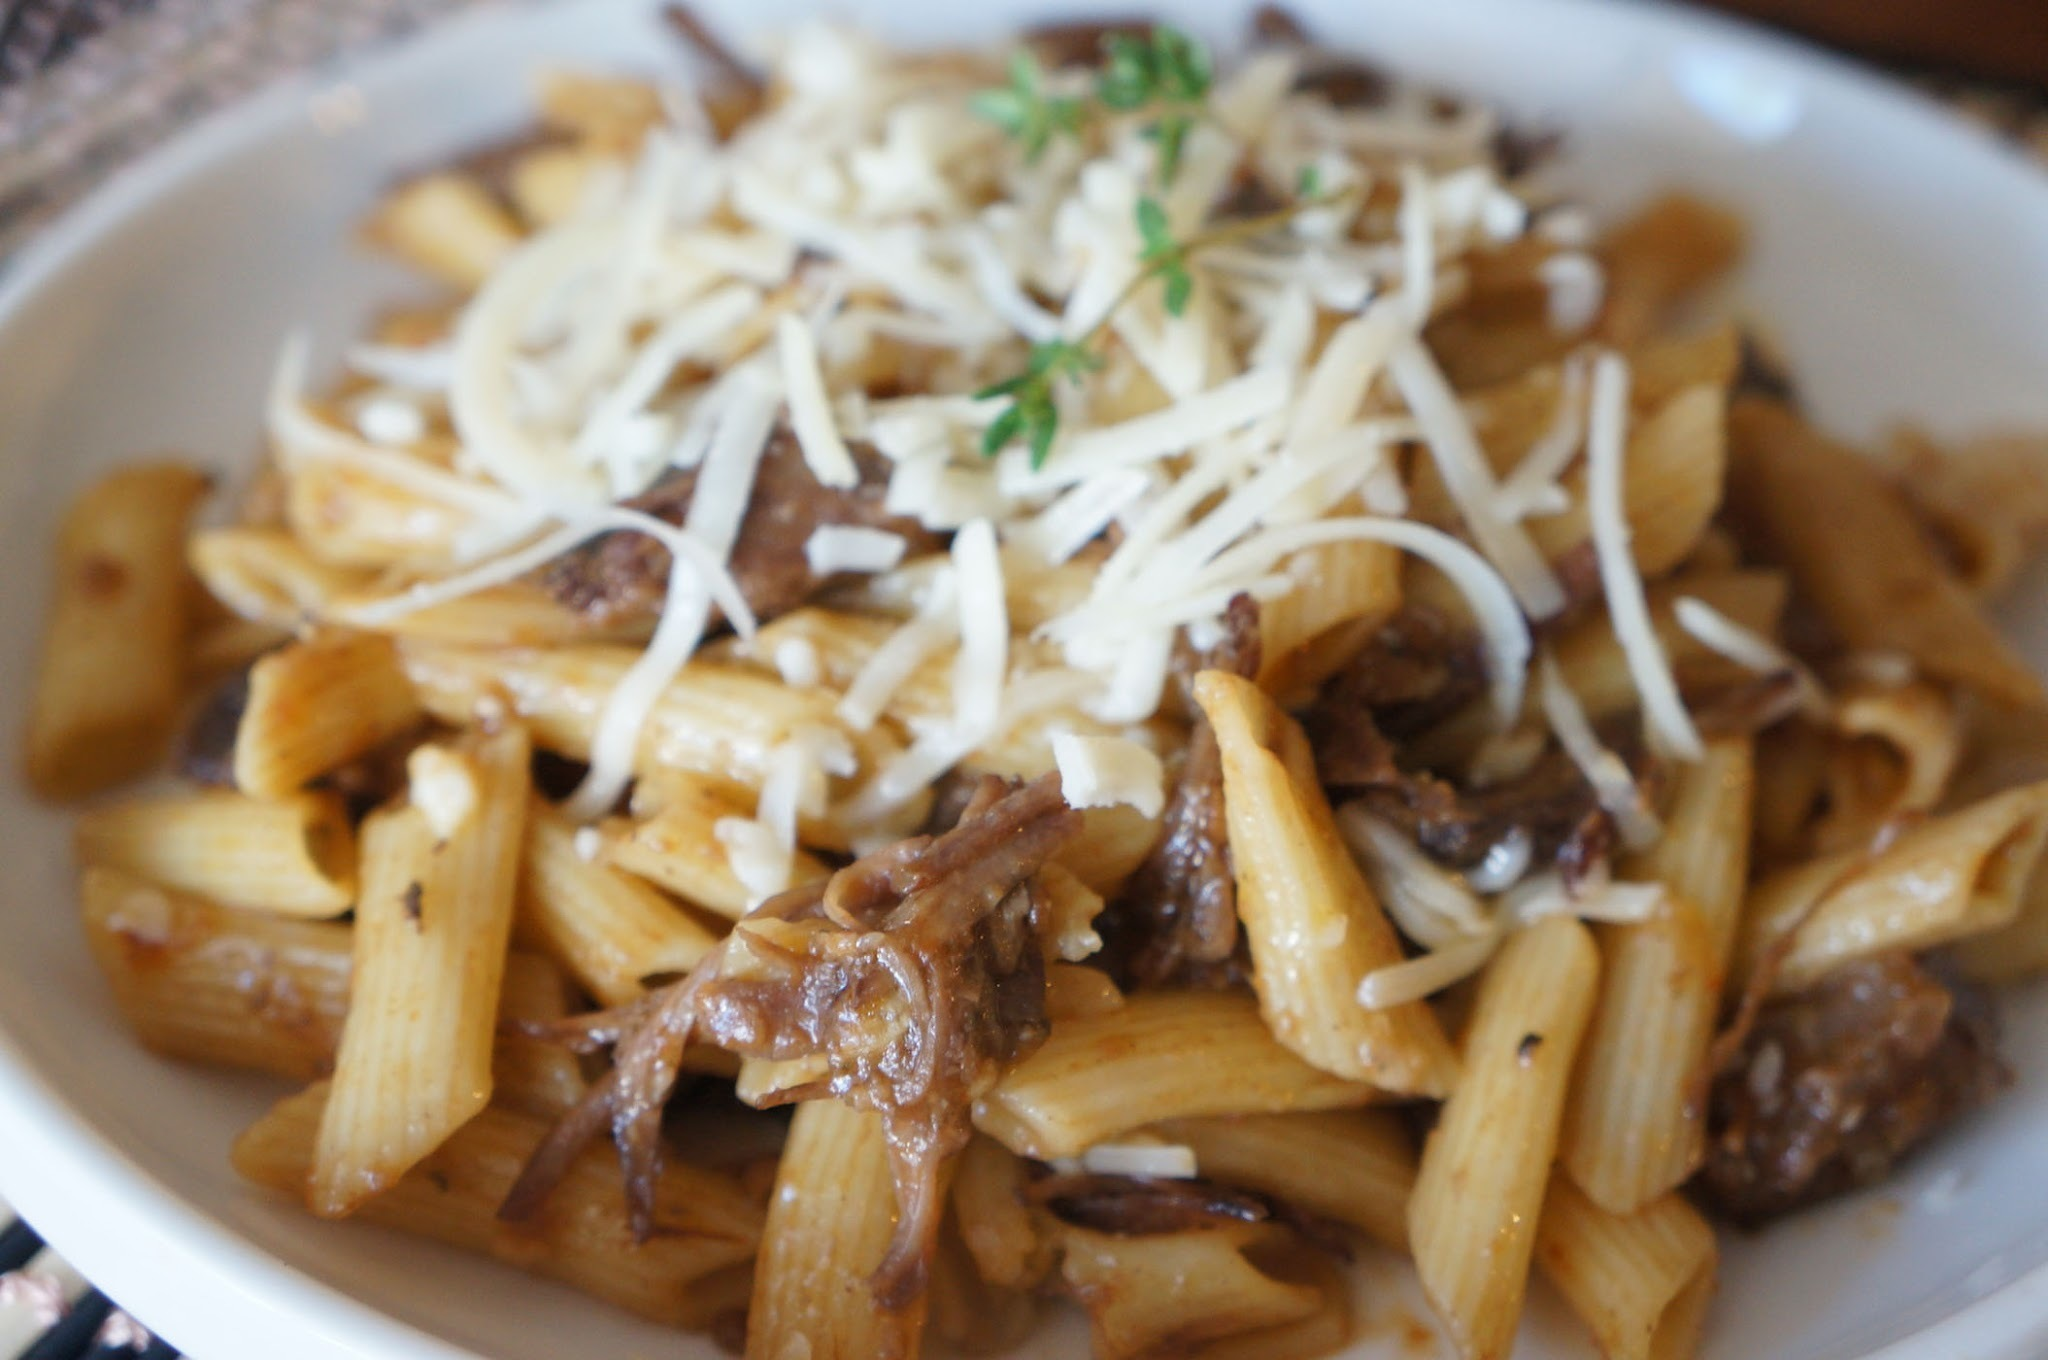 Braised short rib with penne pasta